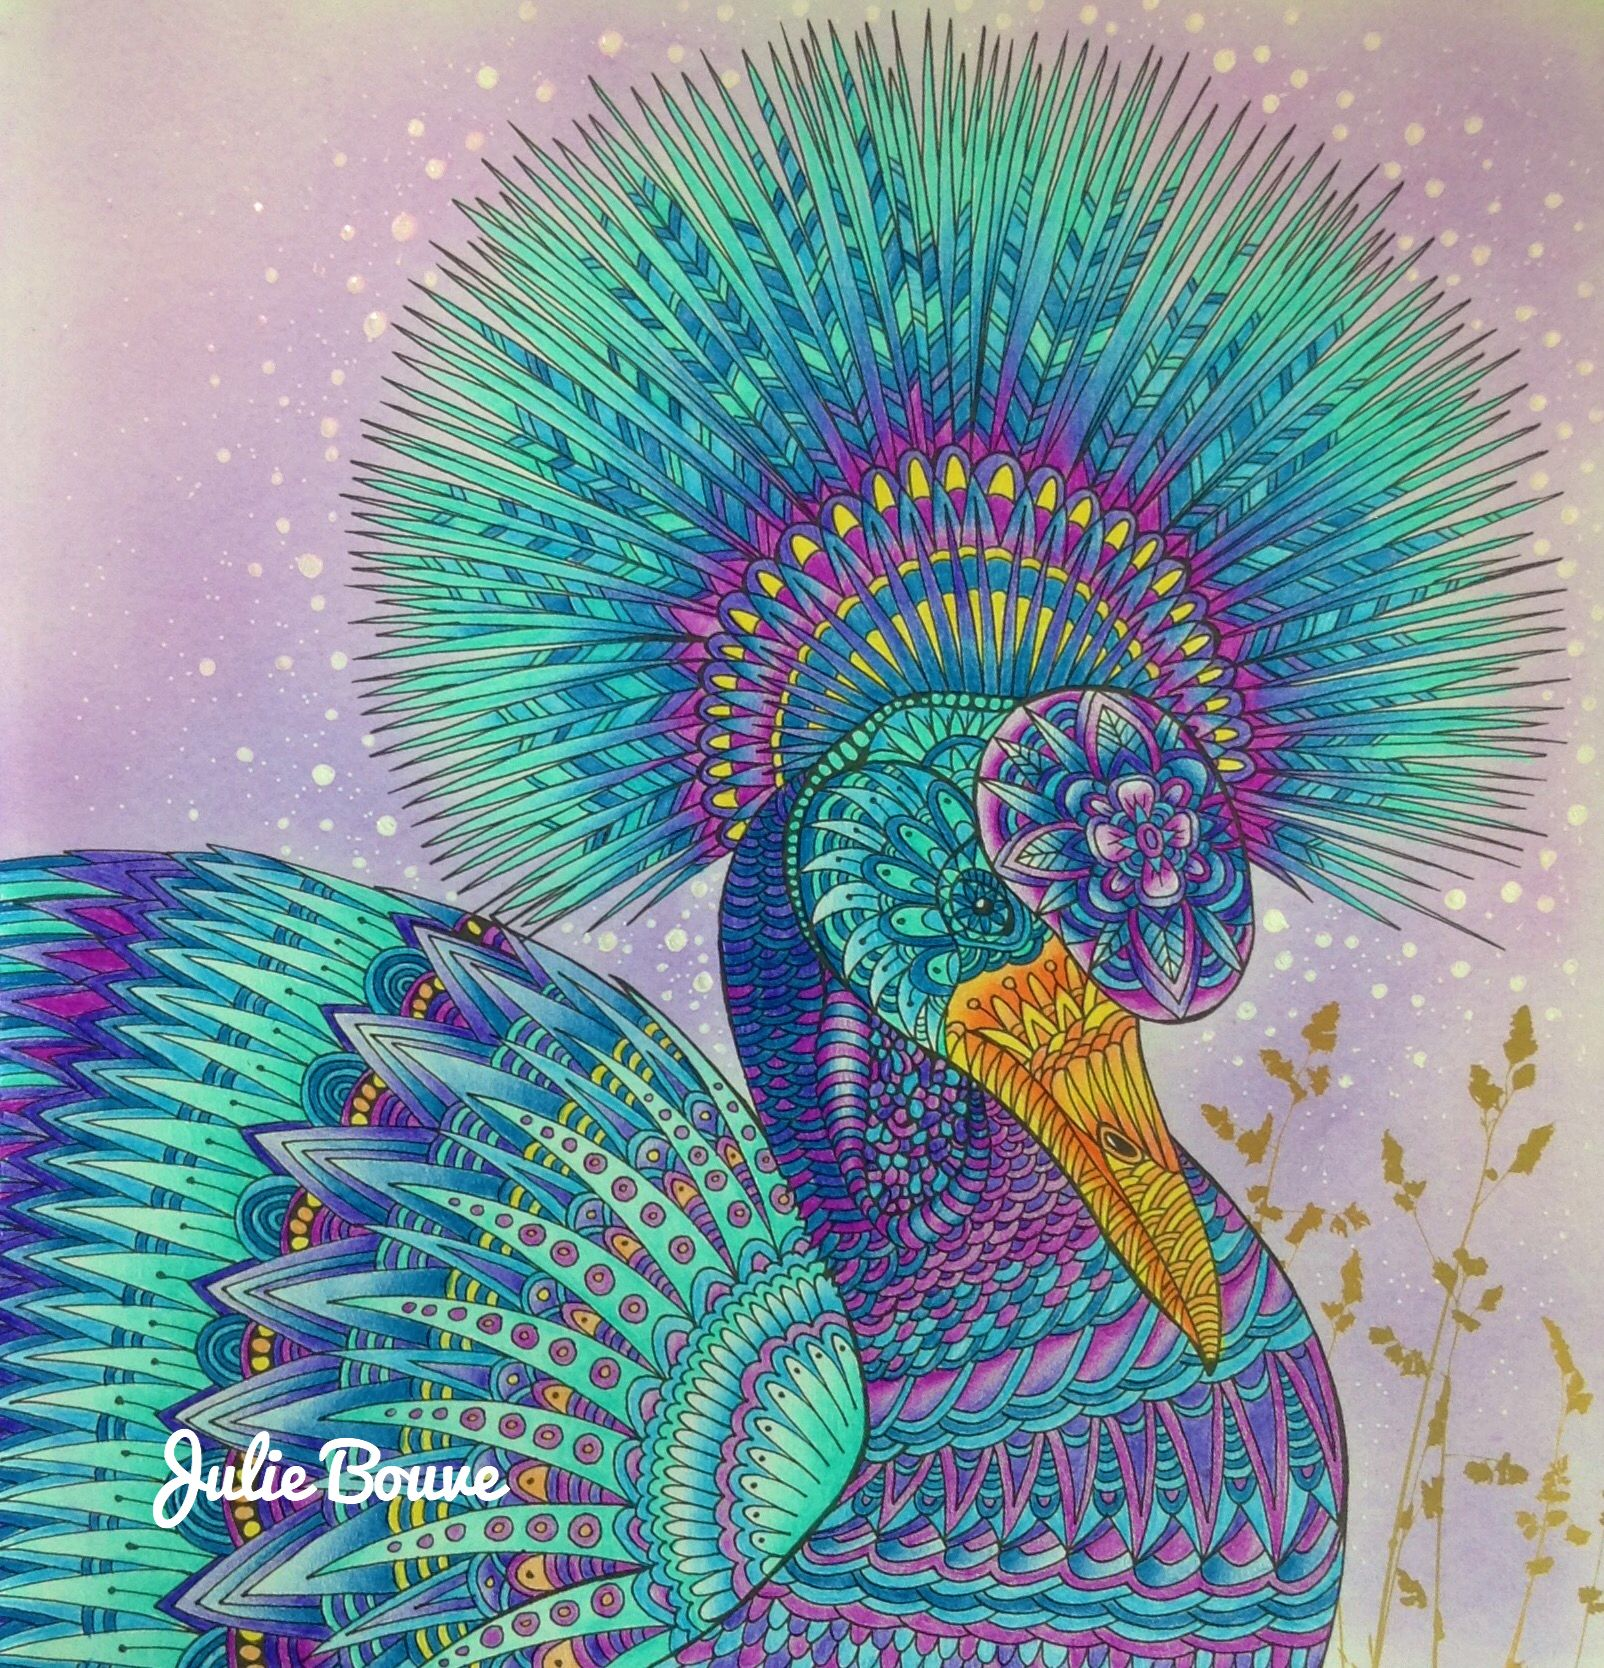 Pin By Julie Licata On Art Millie Marotta Coloring Book Coloring Book Art Animal Kingdom Colouring Book